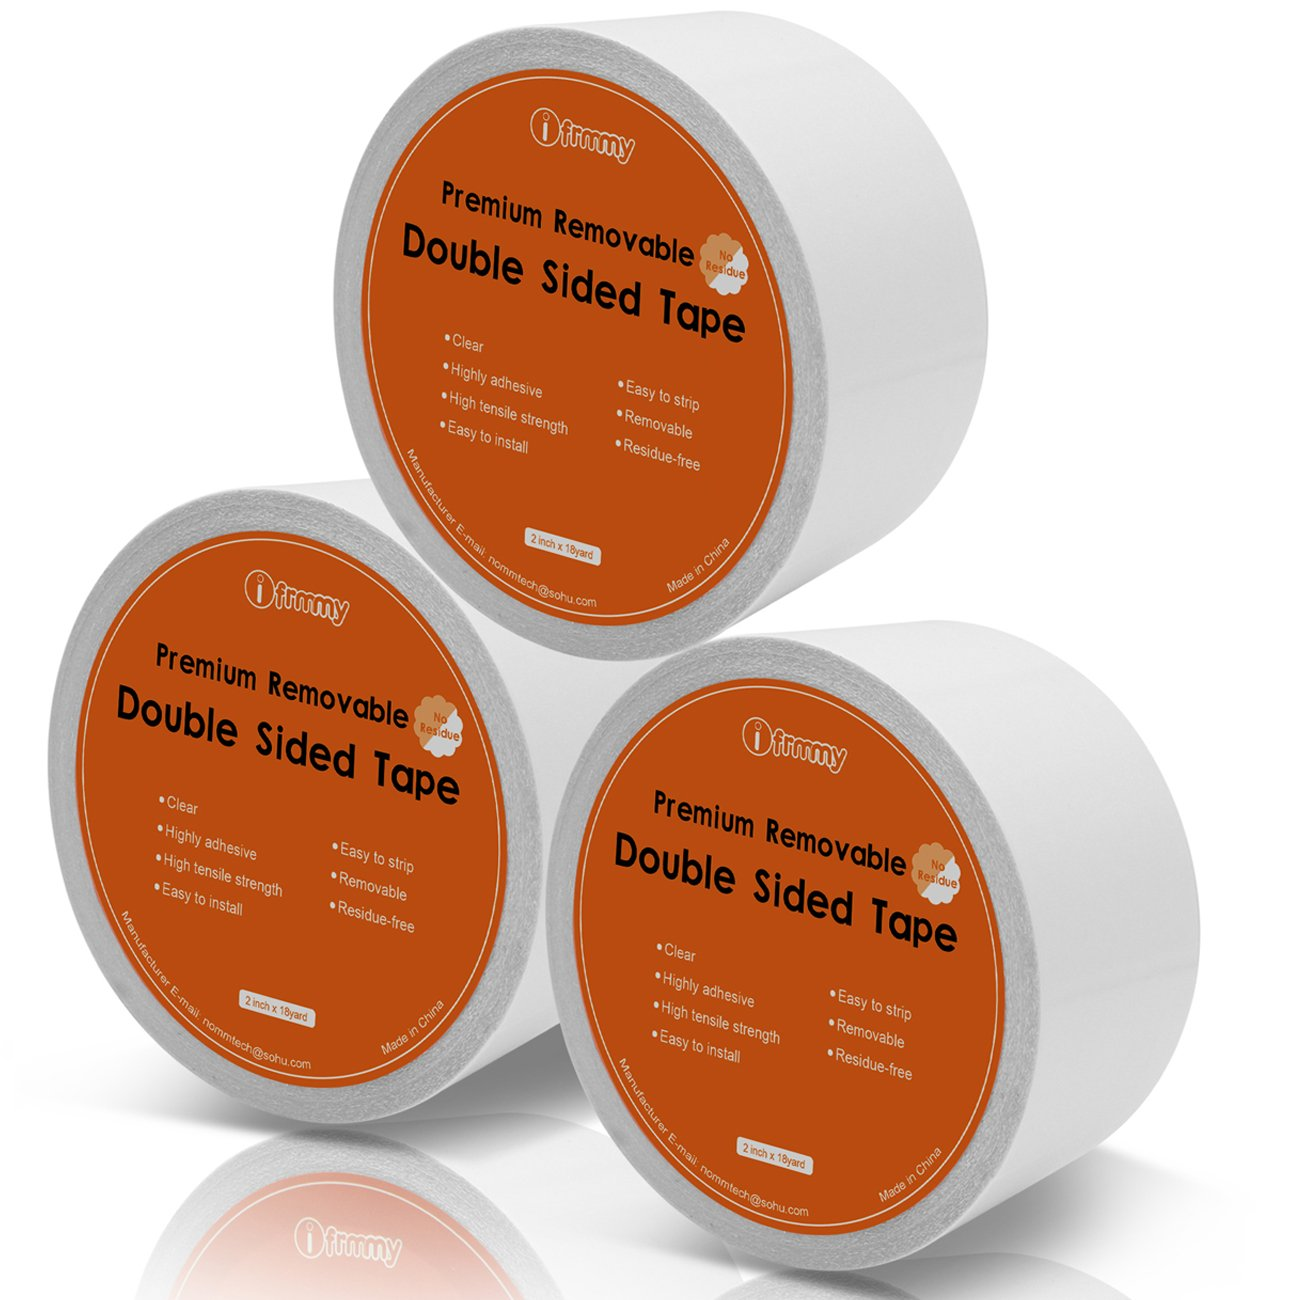 Removable Clear Double Sided Sticky Tape - No Residue, 2 inches x 20 Yards (3 Rolls) by I FRMMY